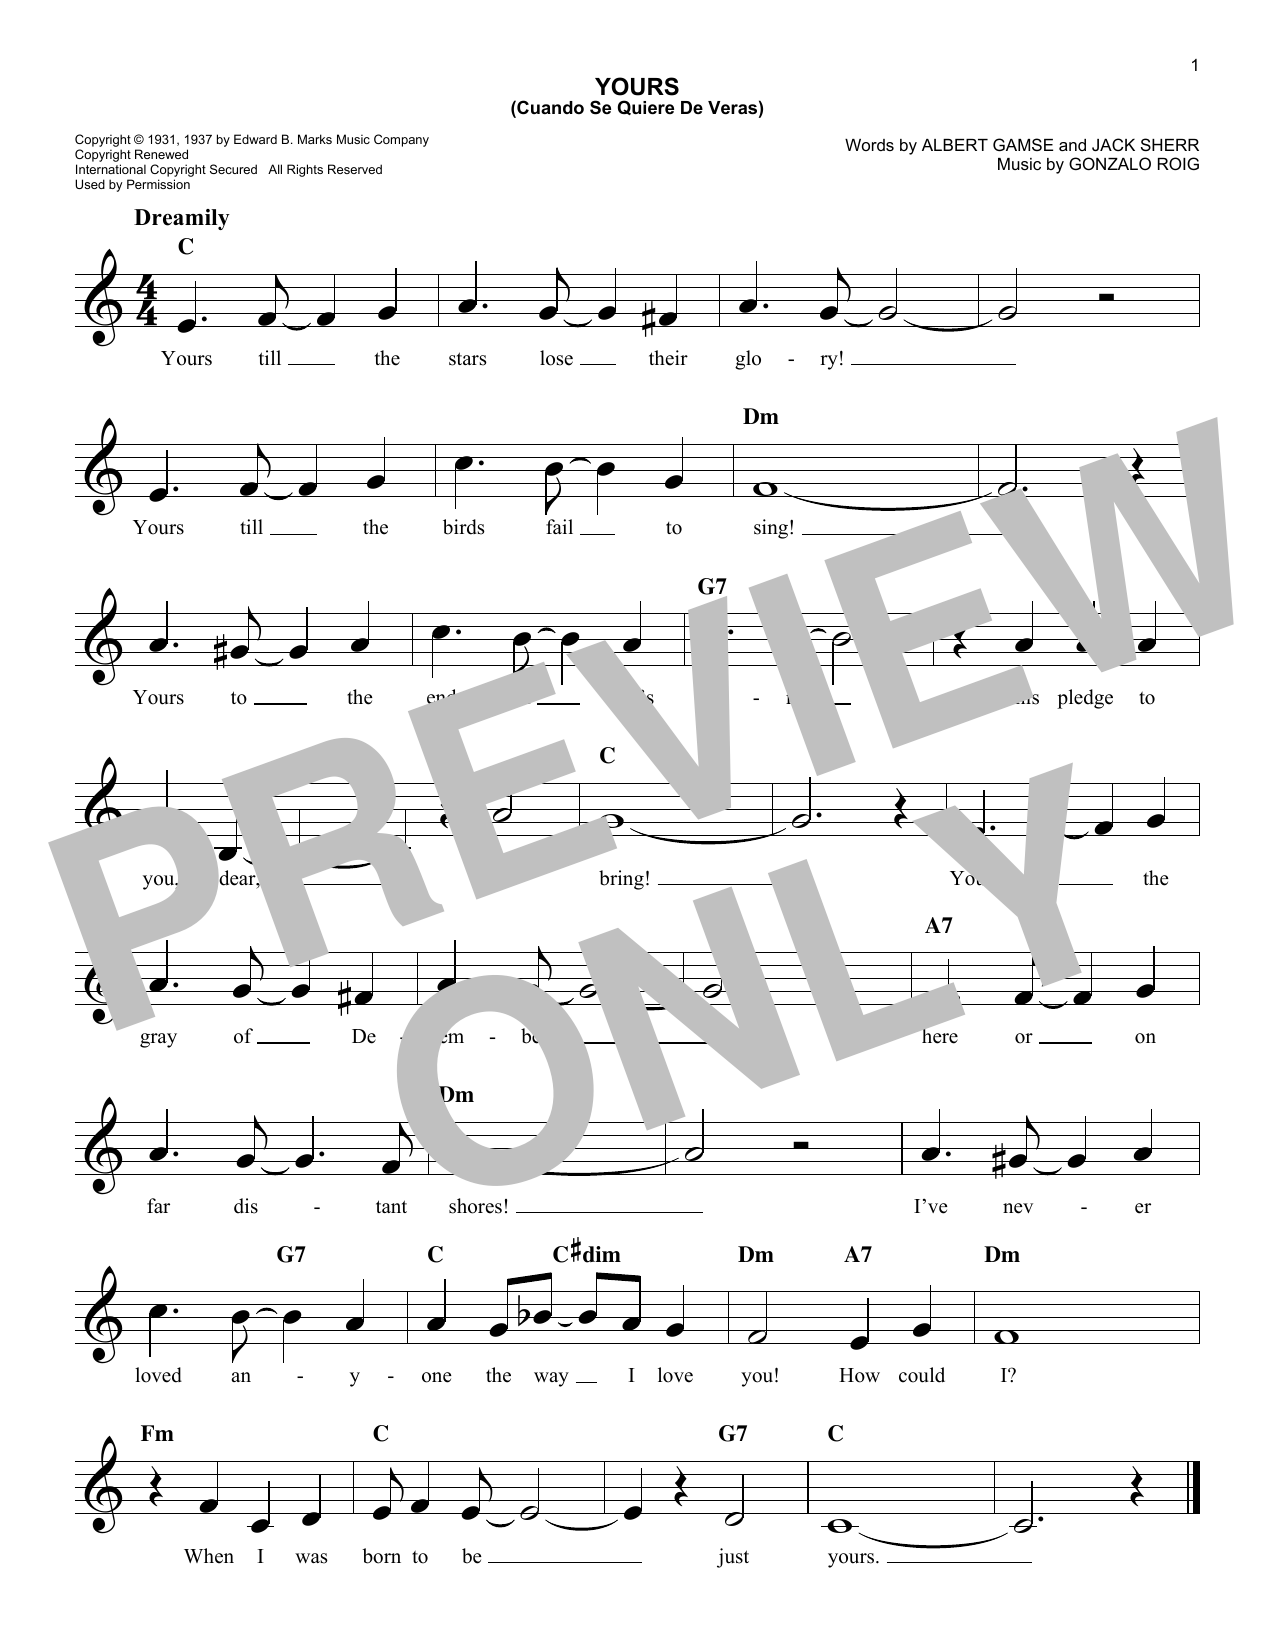 Download Agustin Rodriguez 'Yours (Quiereme Mucho)' Digital Sheet Music Notes & Chords and start playing in minutes